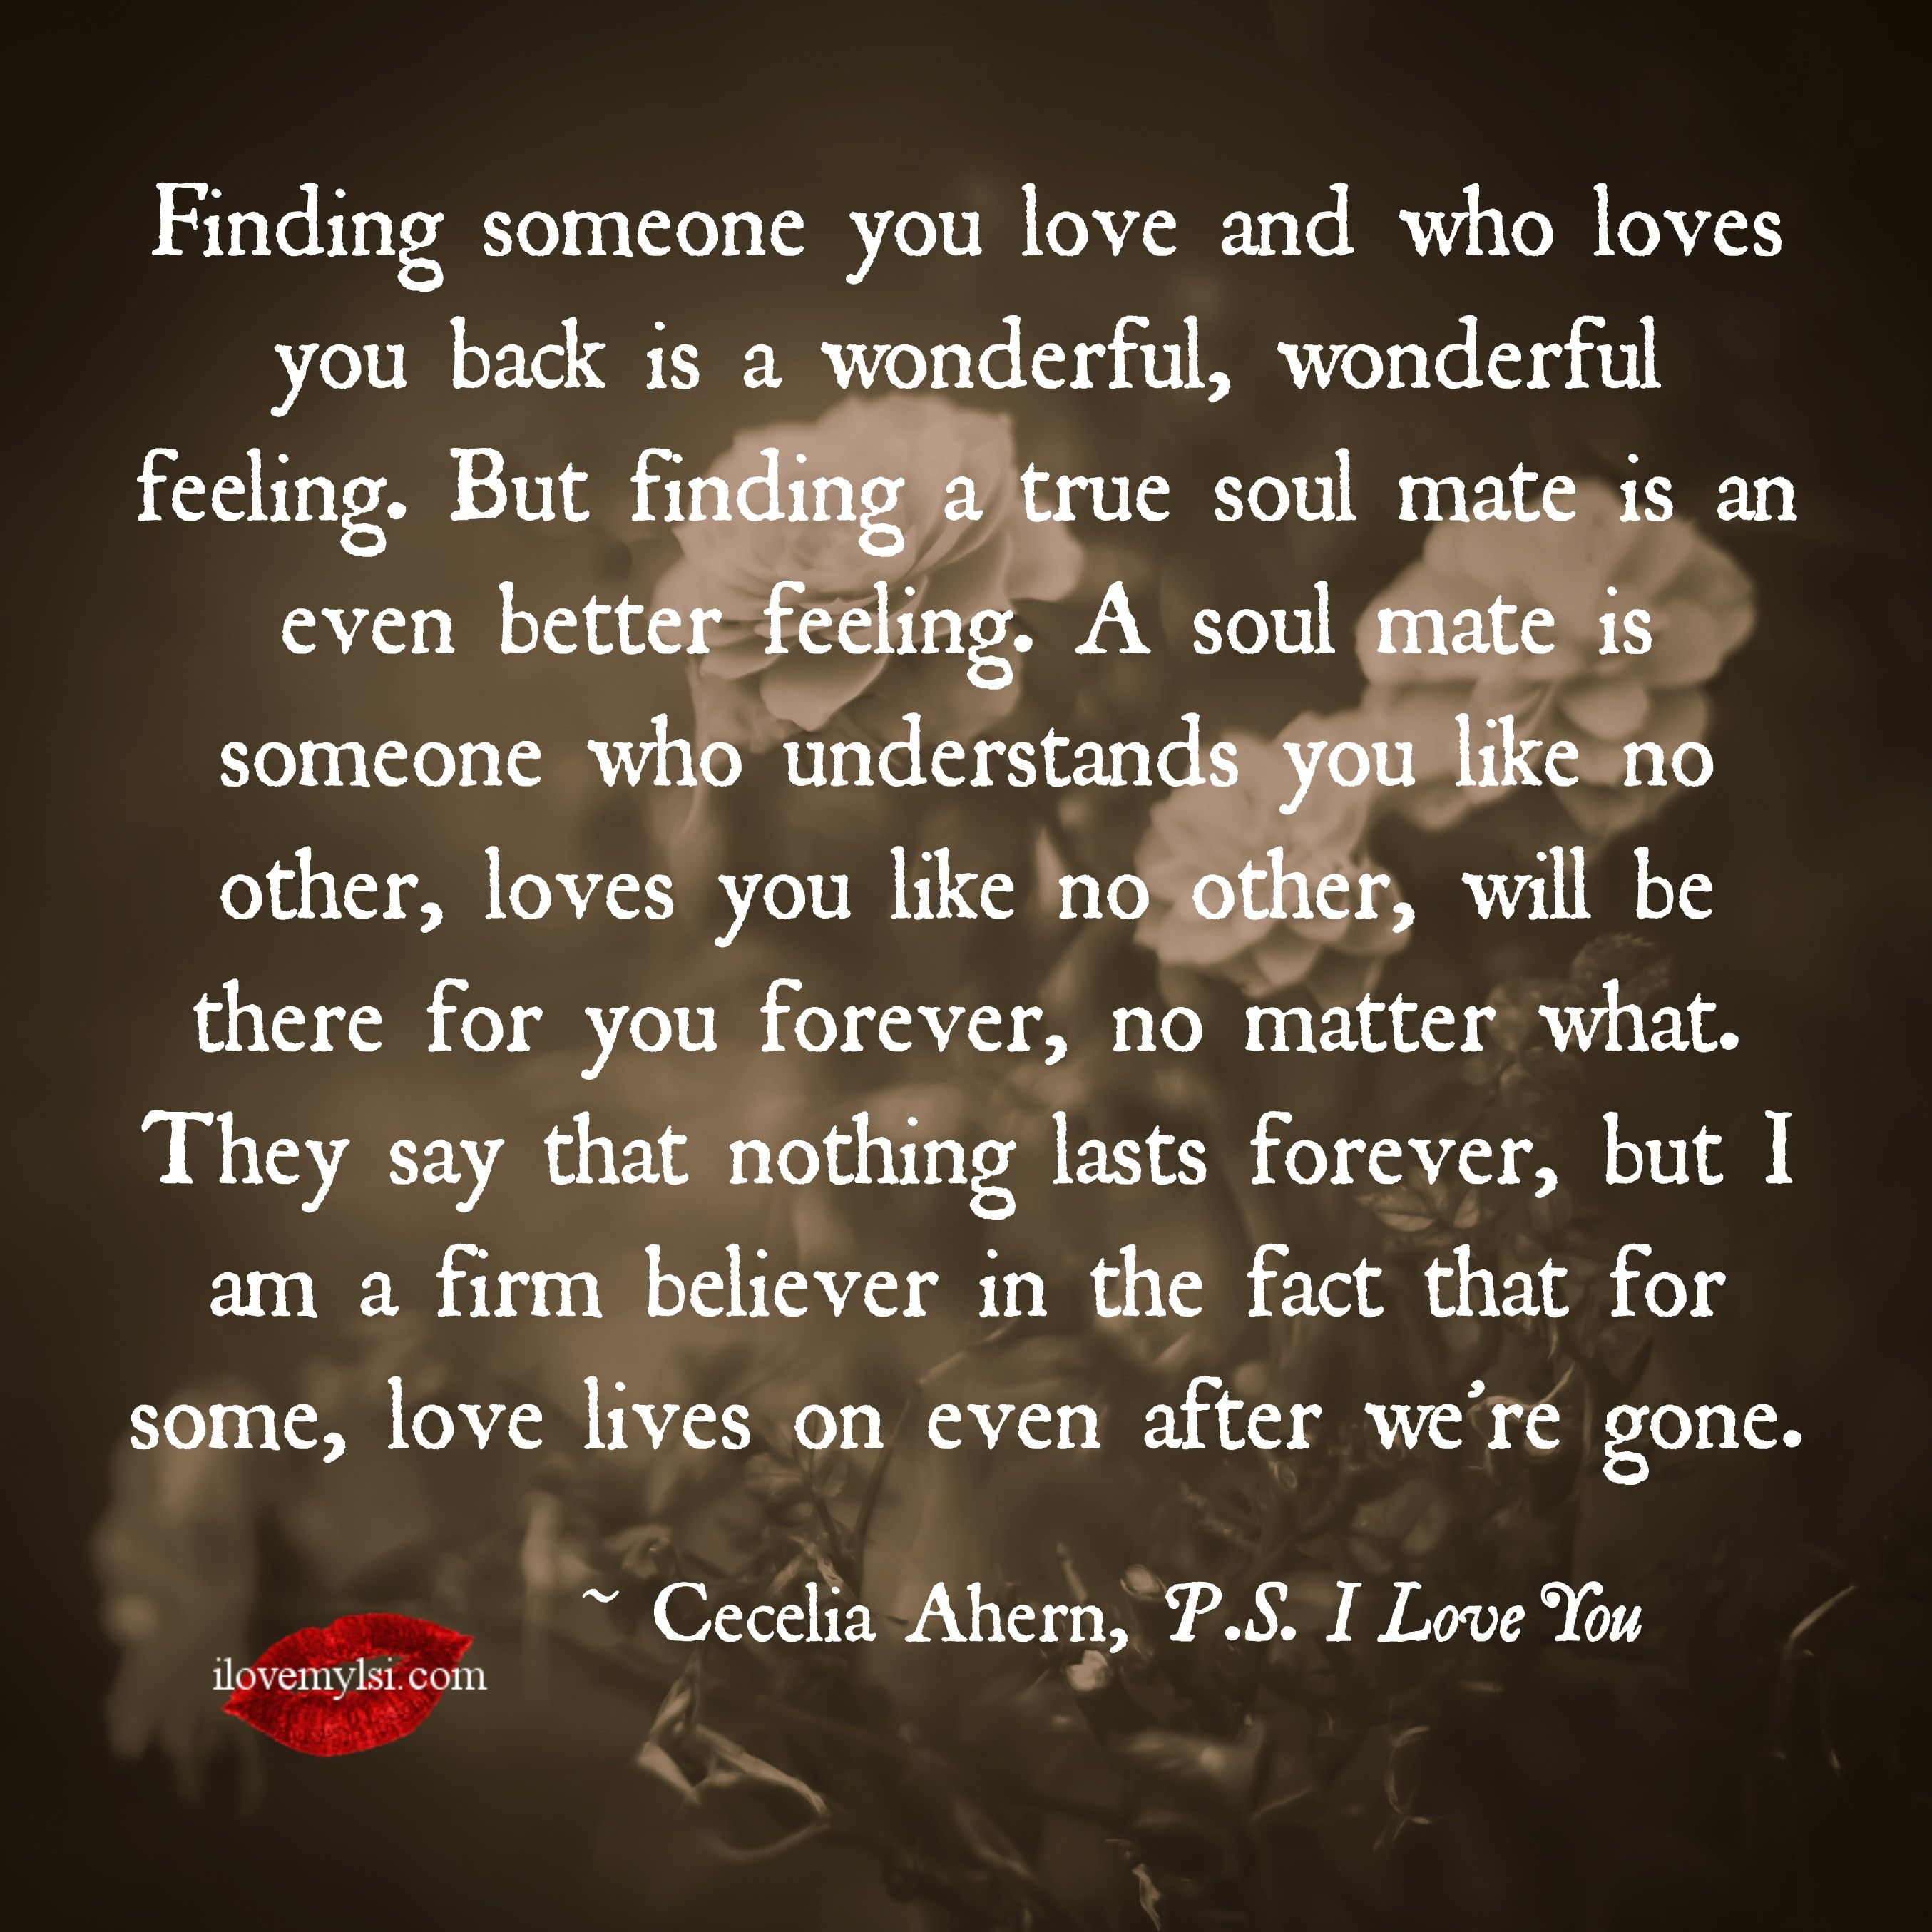 Most Romantic Love Quotes For Her The 25 Most Romantic Love Quotes You Will Ever Read Page 6 Of